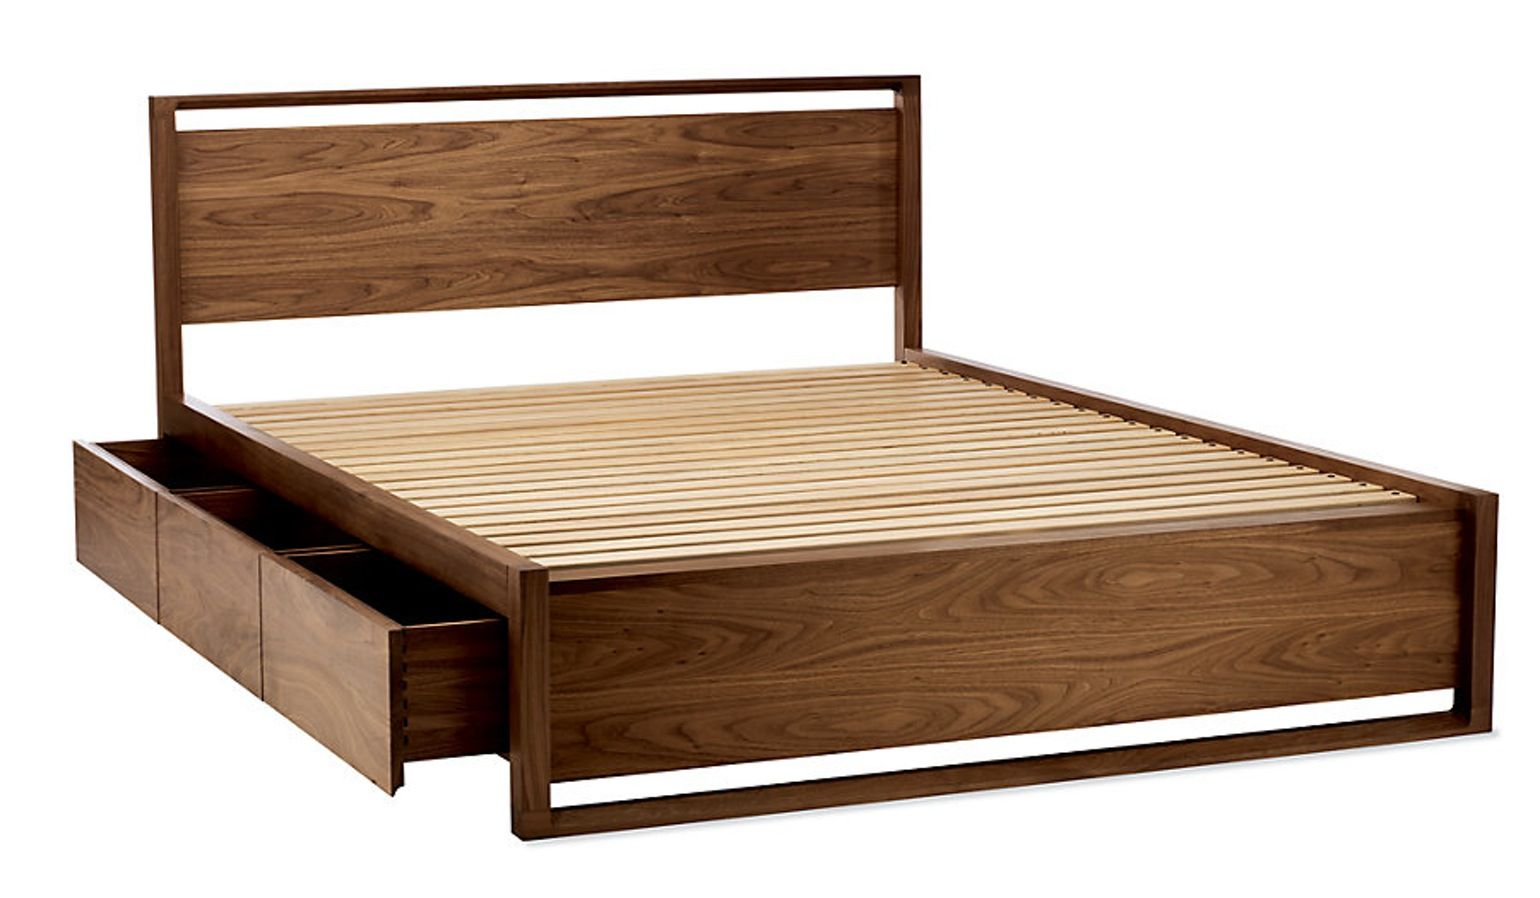 Matera Bed With Storage Industrial, MidCentury Modern